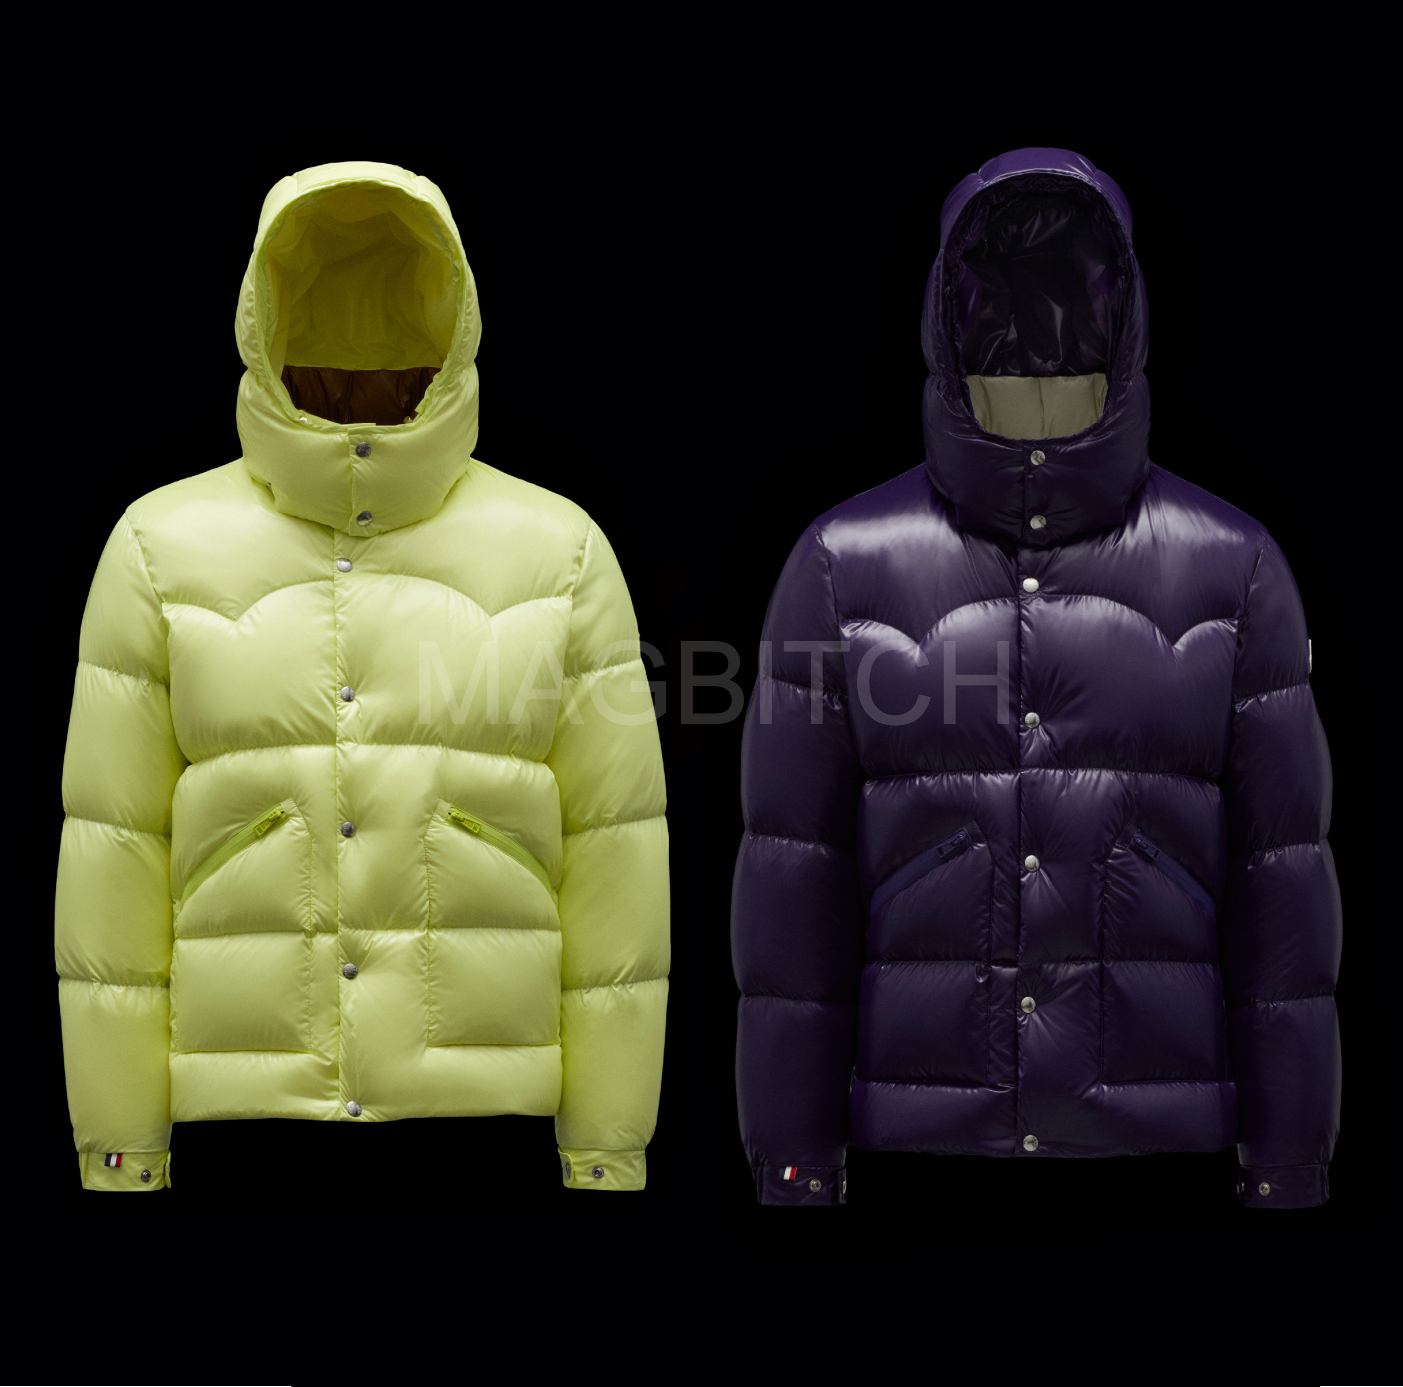 2021-22AW MONCLER Coutard ダウンジャケット ミラノ本店買付け (MONCLER/ダウンジャケット) 23874